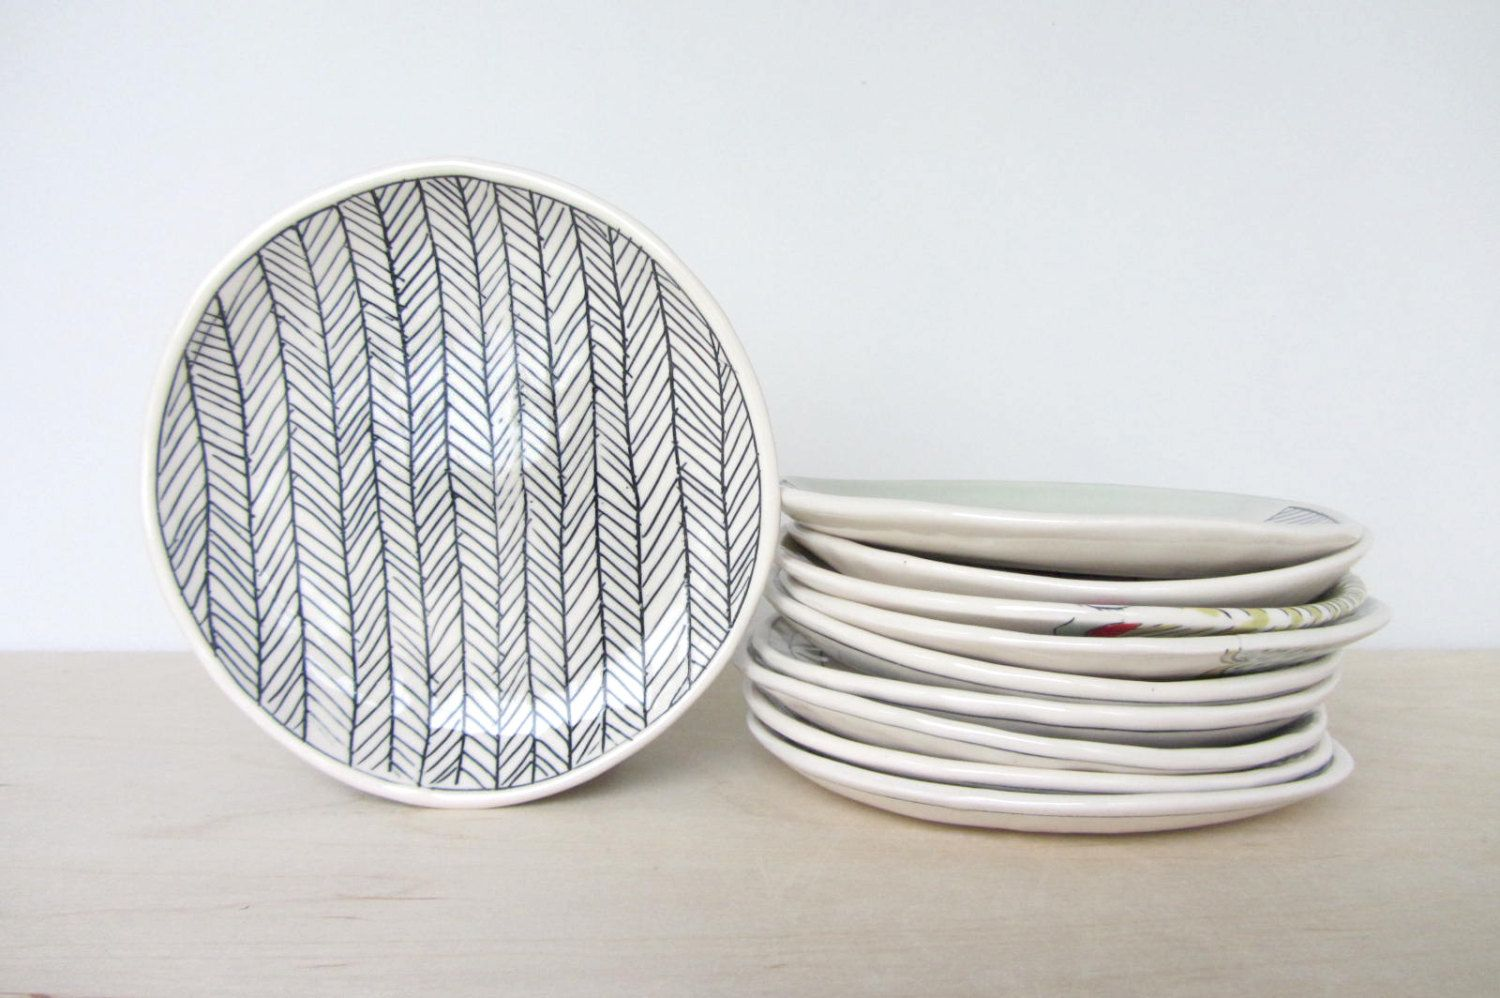 Ceramic Herringbone Patterned Canape/Dessert Plate - Ready to Ship : modern design plates - pezcame.com